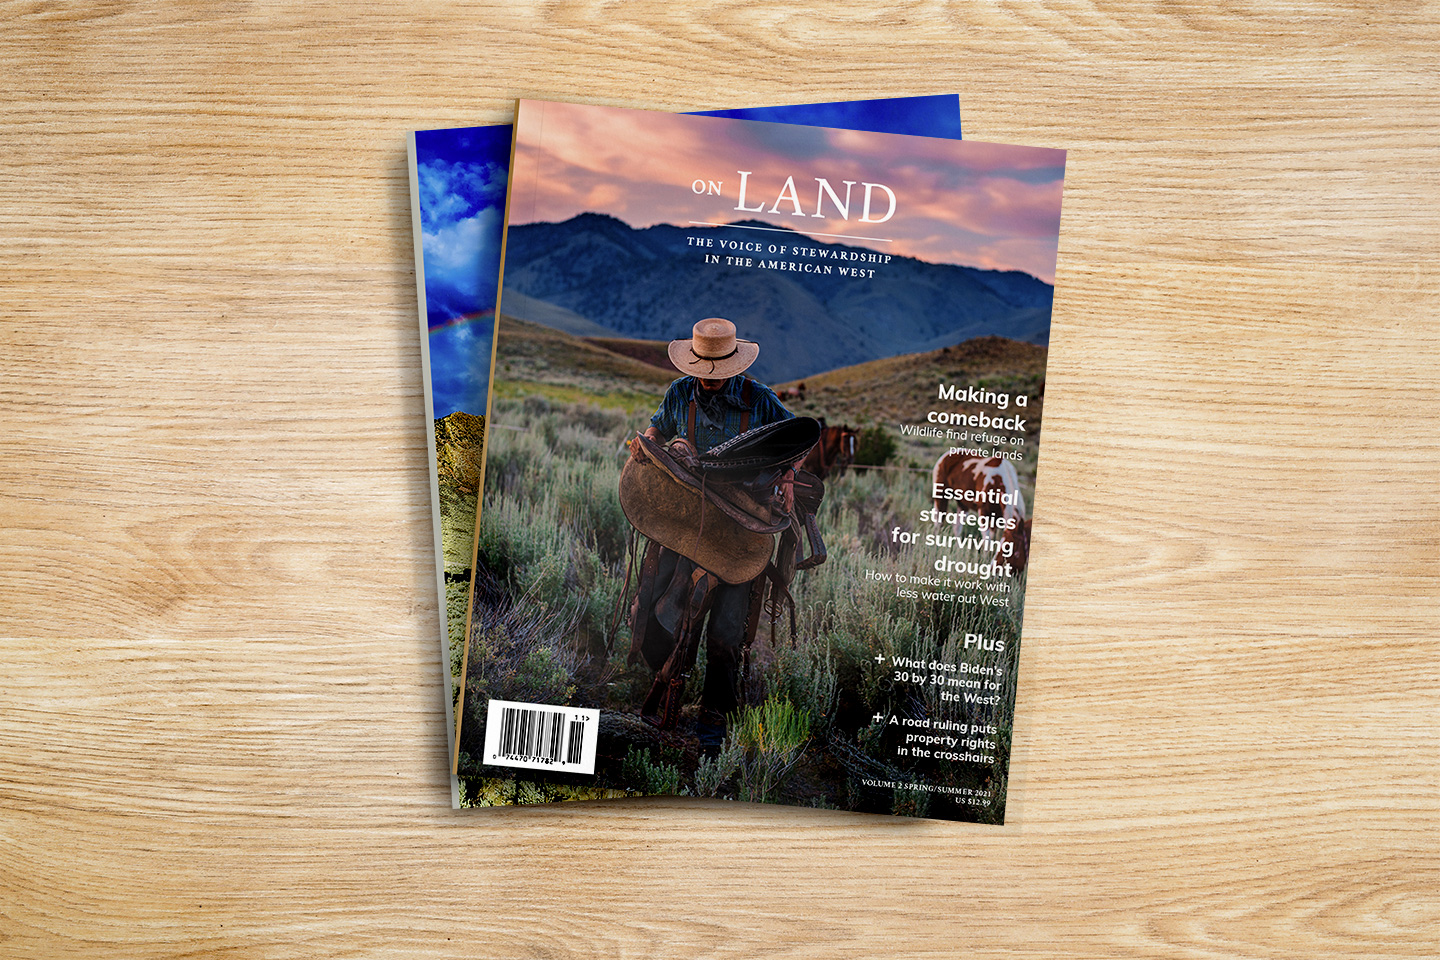 On Land volumes 1 and 2 stack